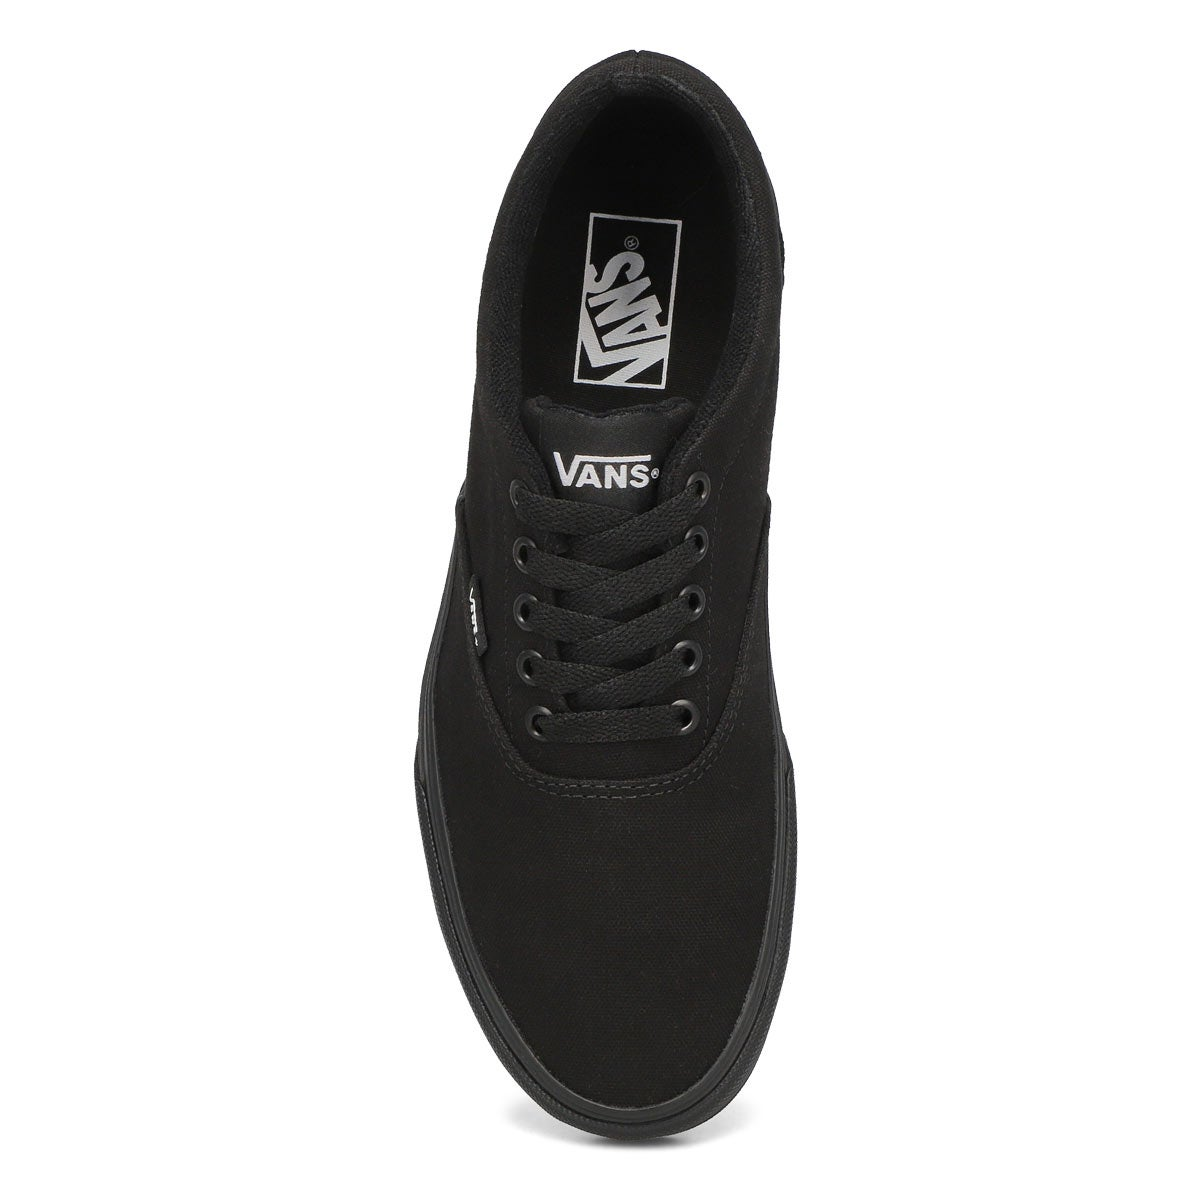 Mns Doheny blk/blk lace up snkr